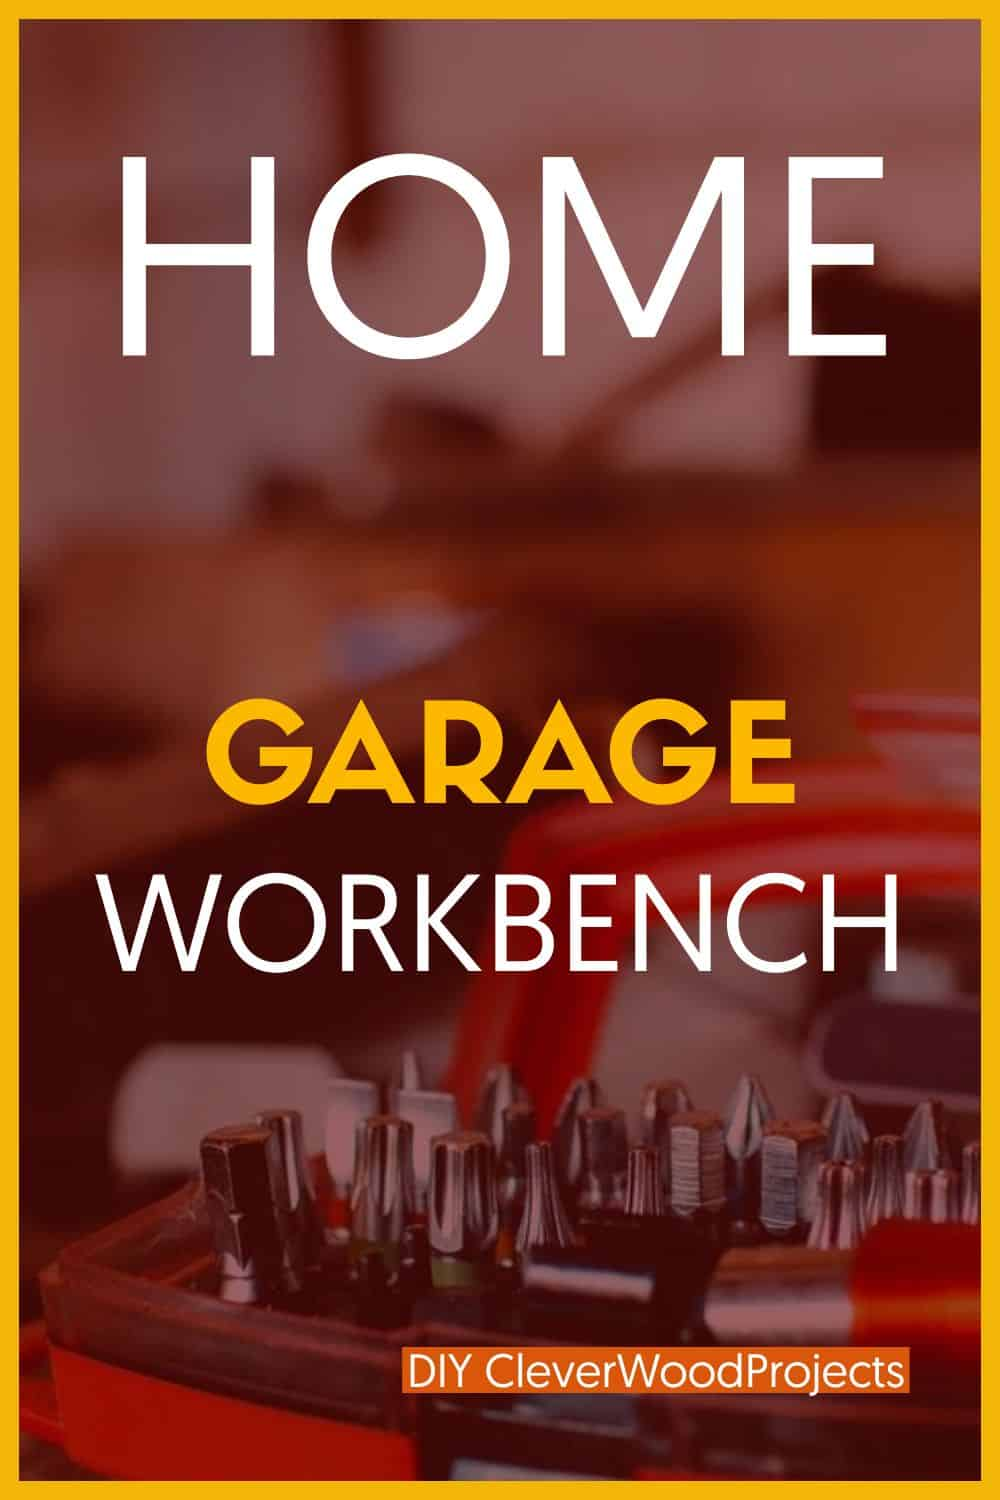 Garage Workbench in Your Home